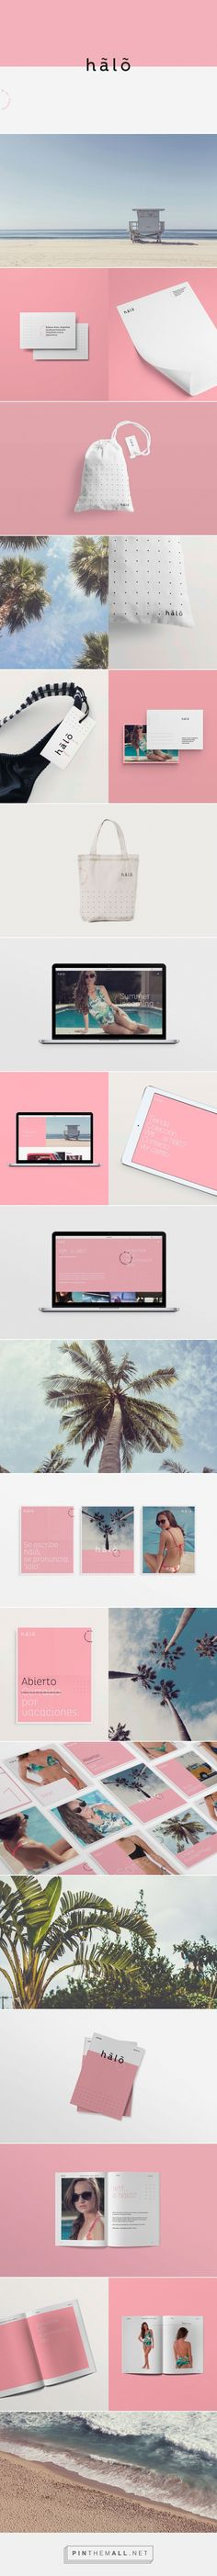 Hãlõ Swimwear Branding by Page   Fivestar Branding Agency – Design and Branding Agency & Curated Inspiration Gallery